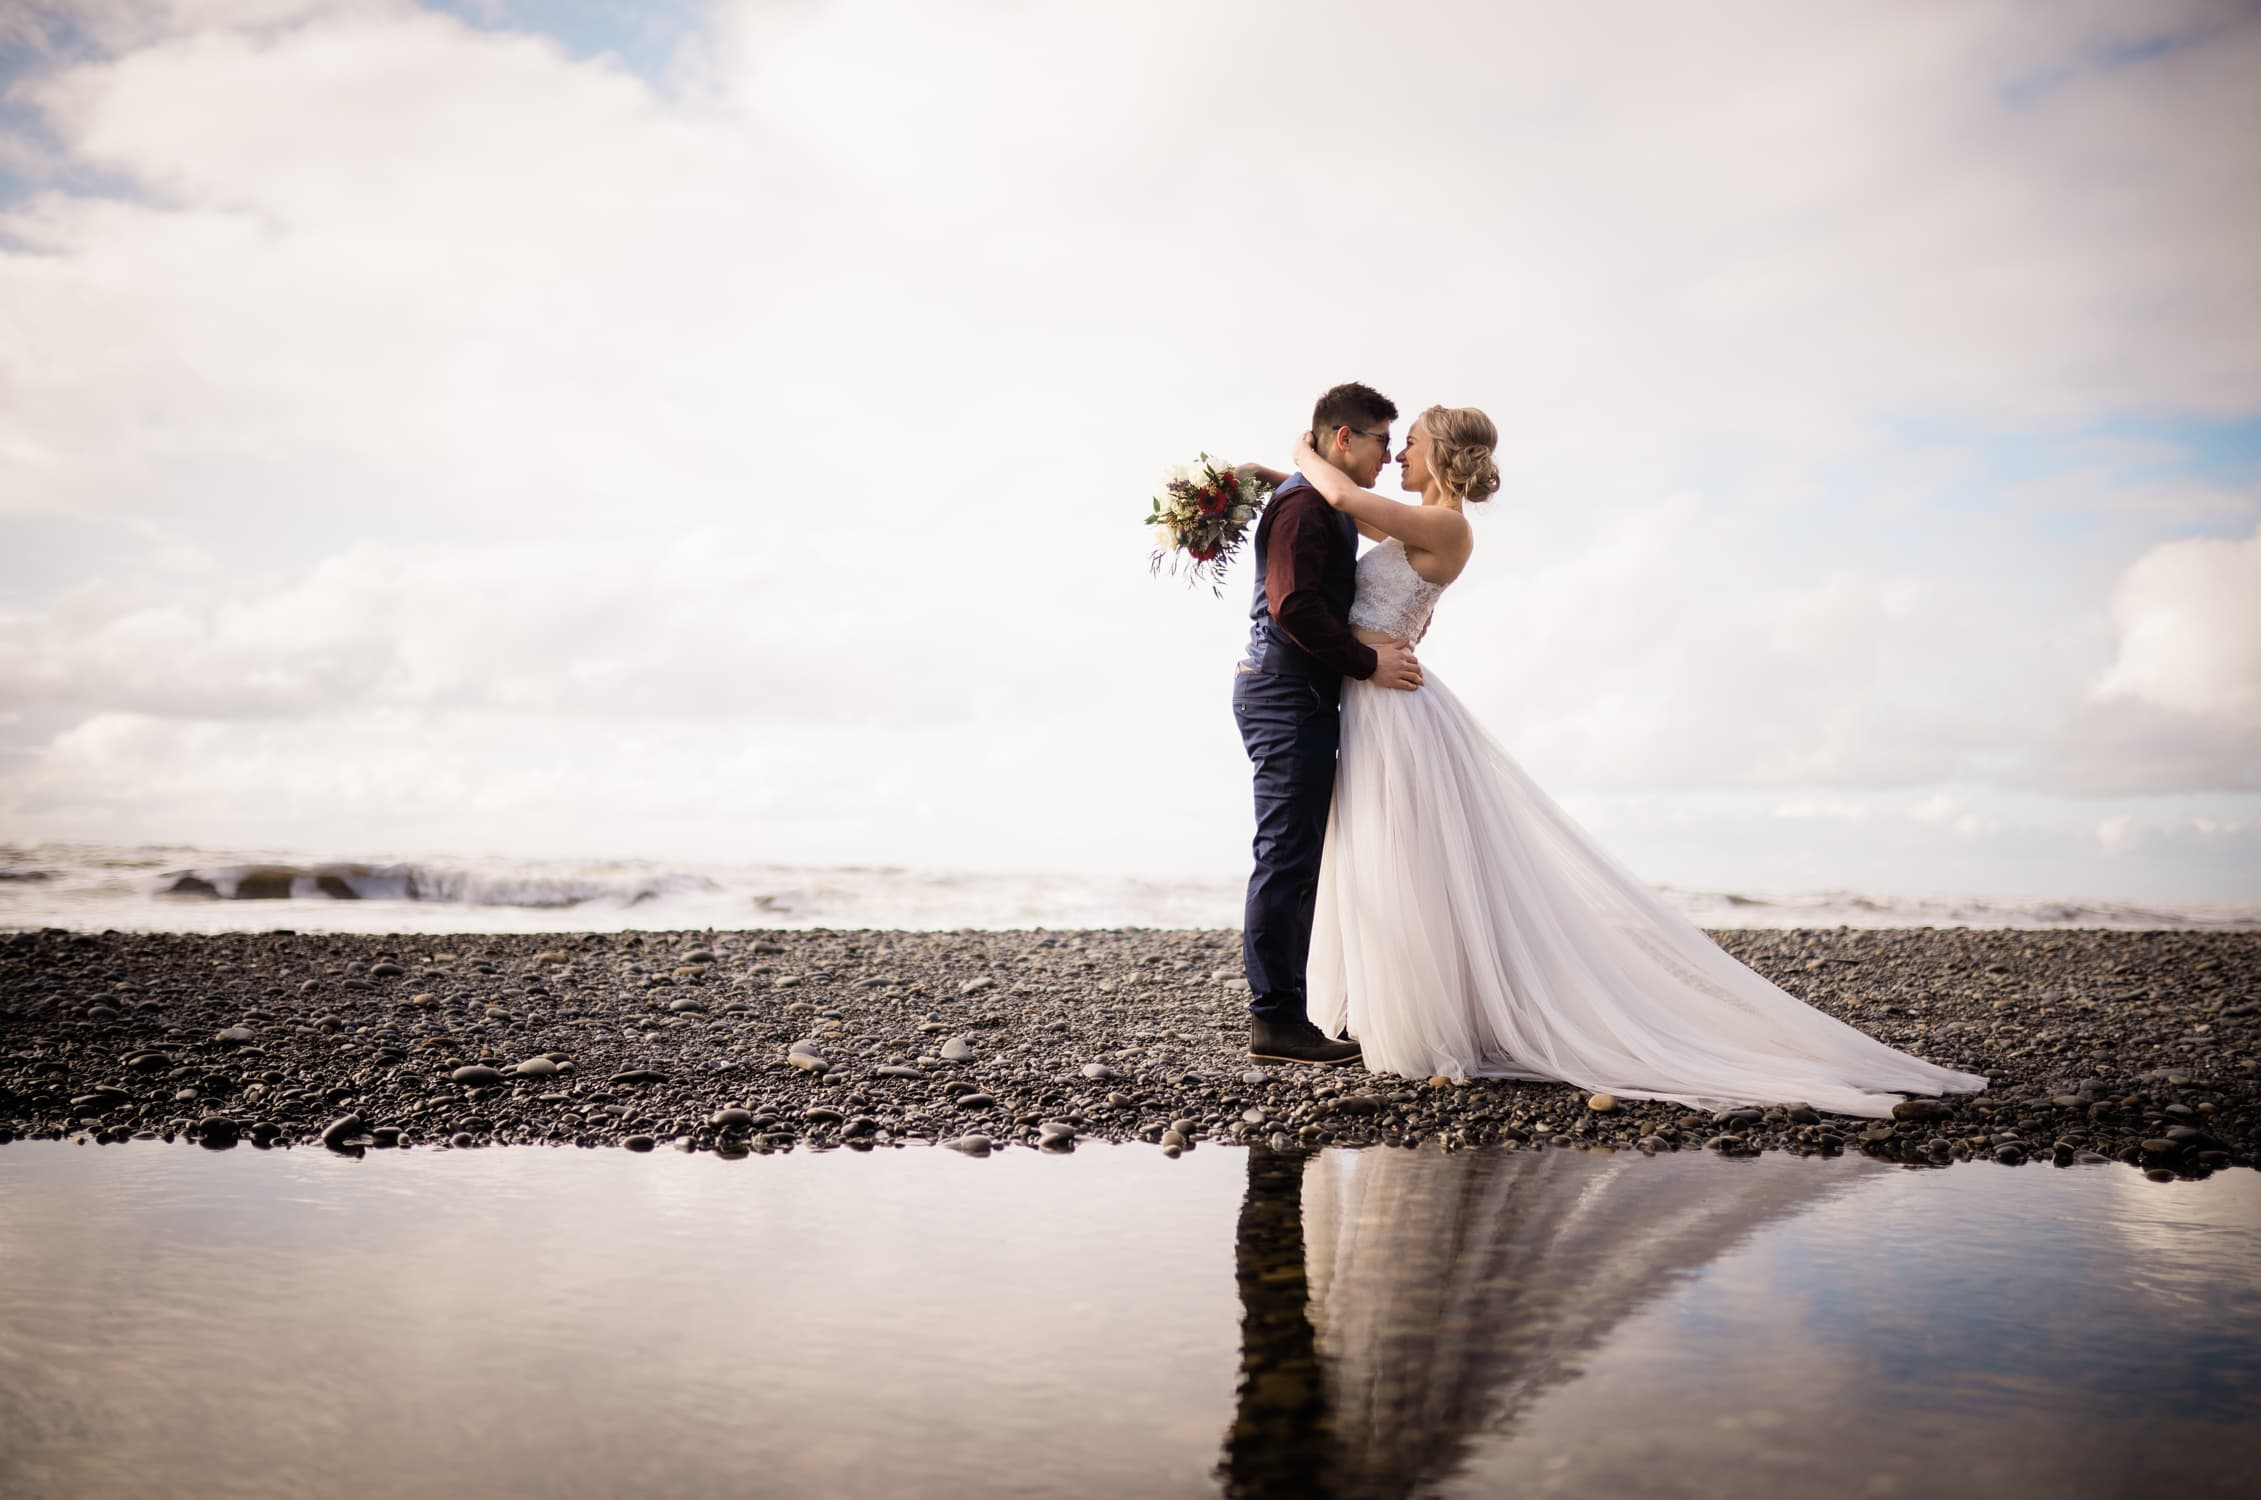 Bride and Groom look into each other's eyes oceanside in Tofino, BC